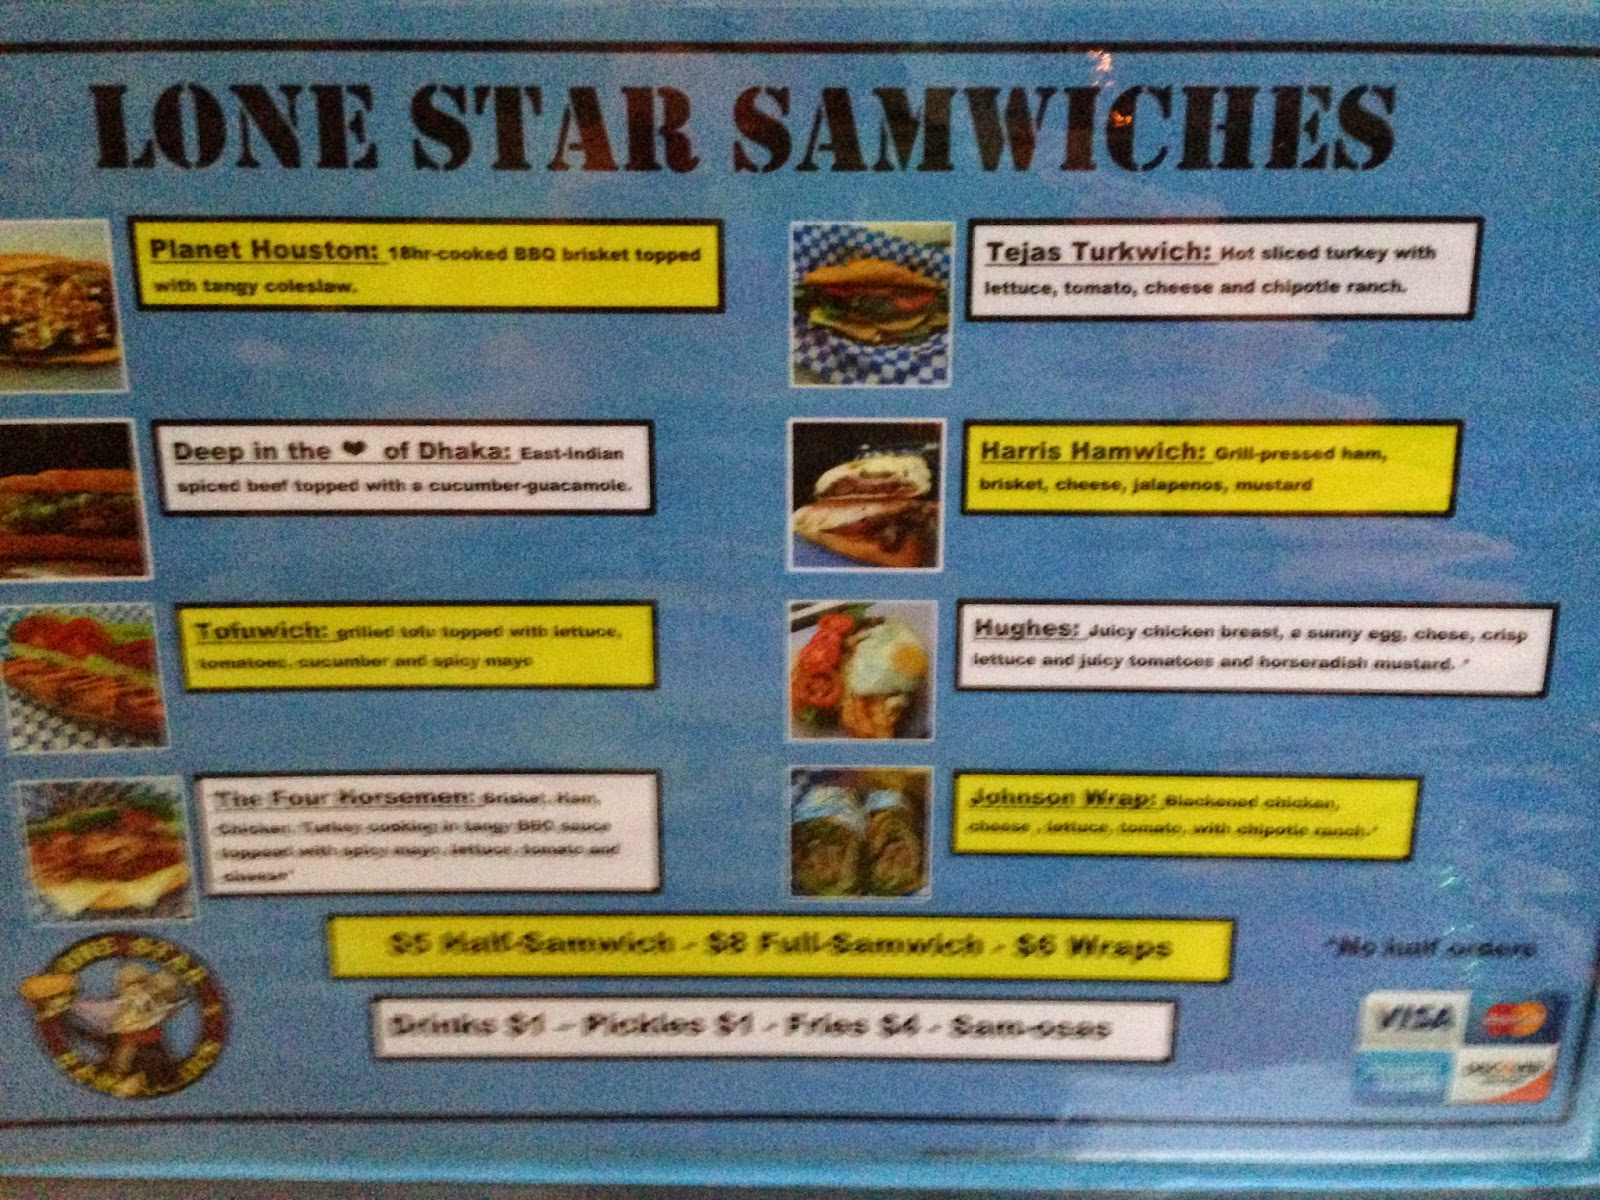 Lone Star Samwiches, Food Truck Menu